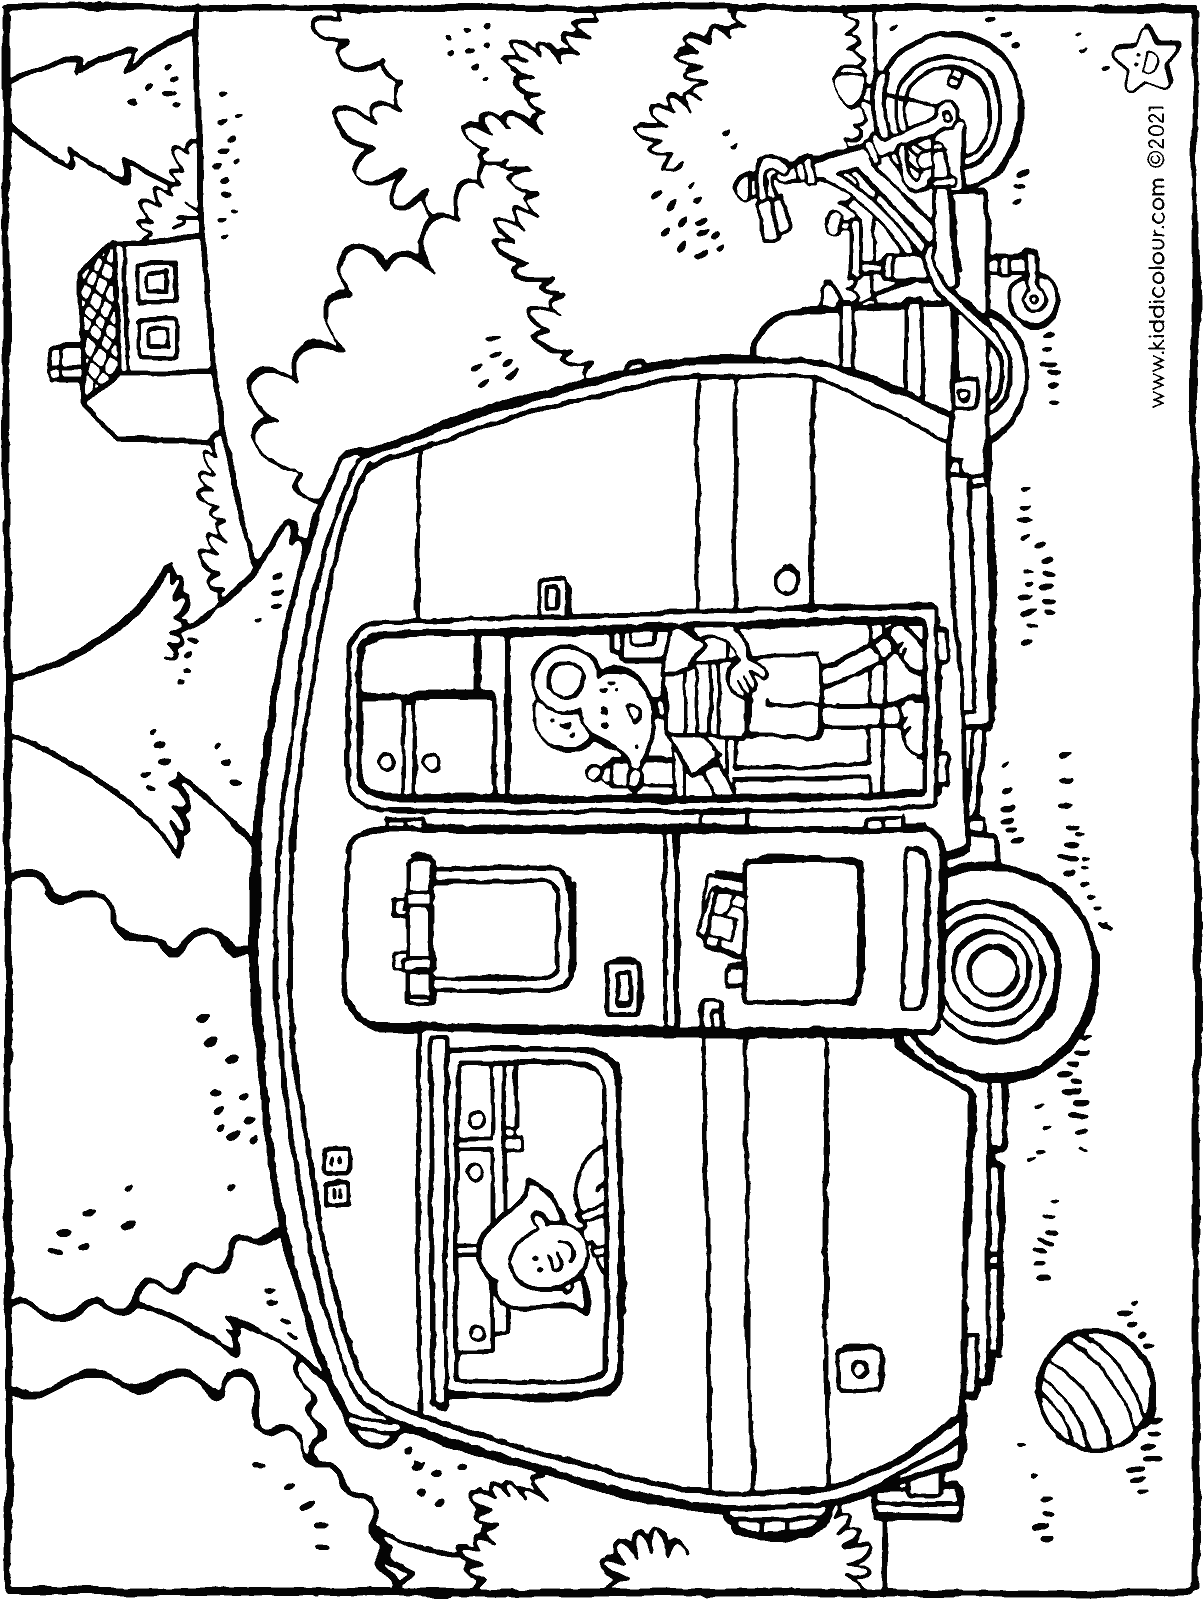 caravan holiday colouring page drawing picture 01H